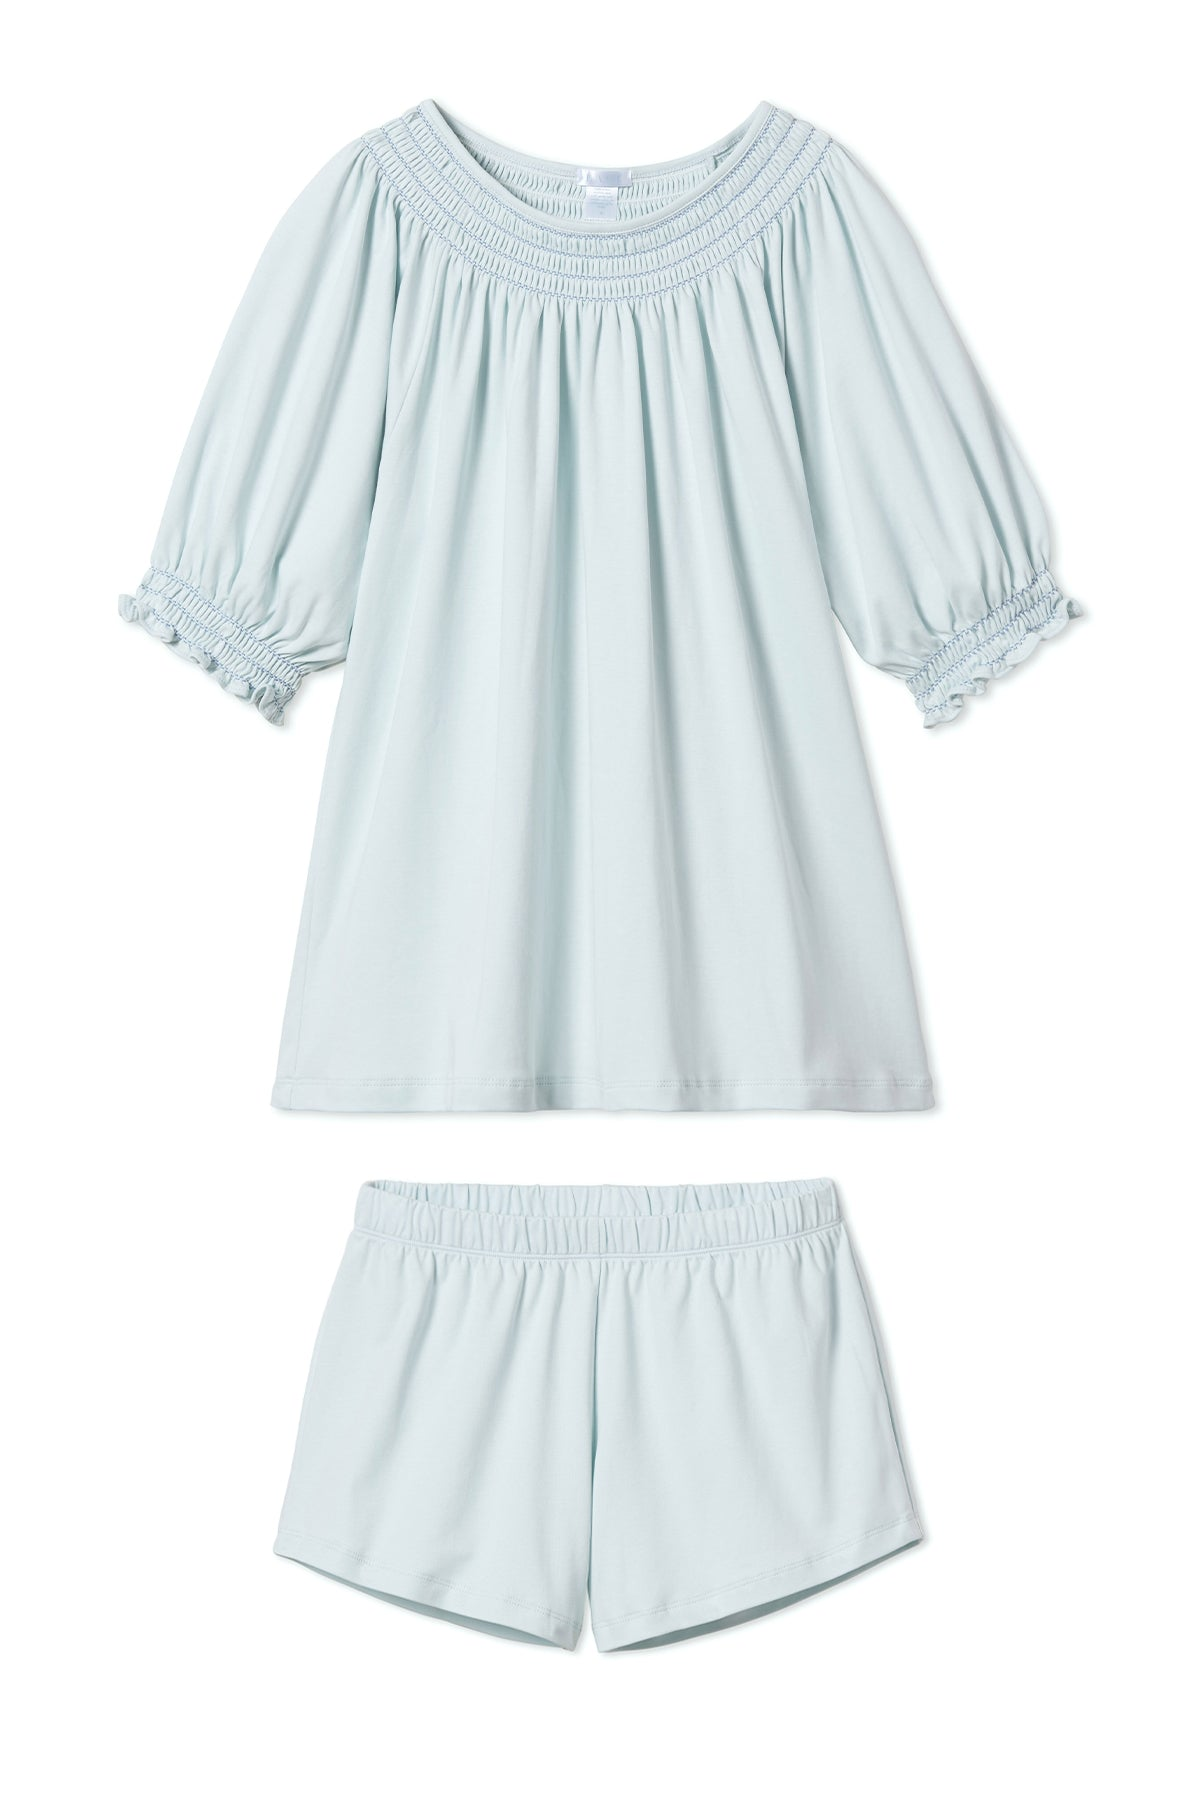 Pima Smocked Shorts Set in Air